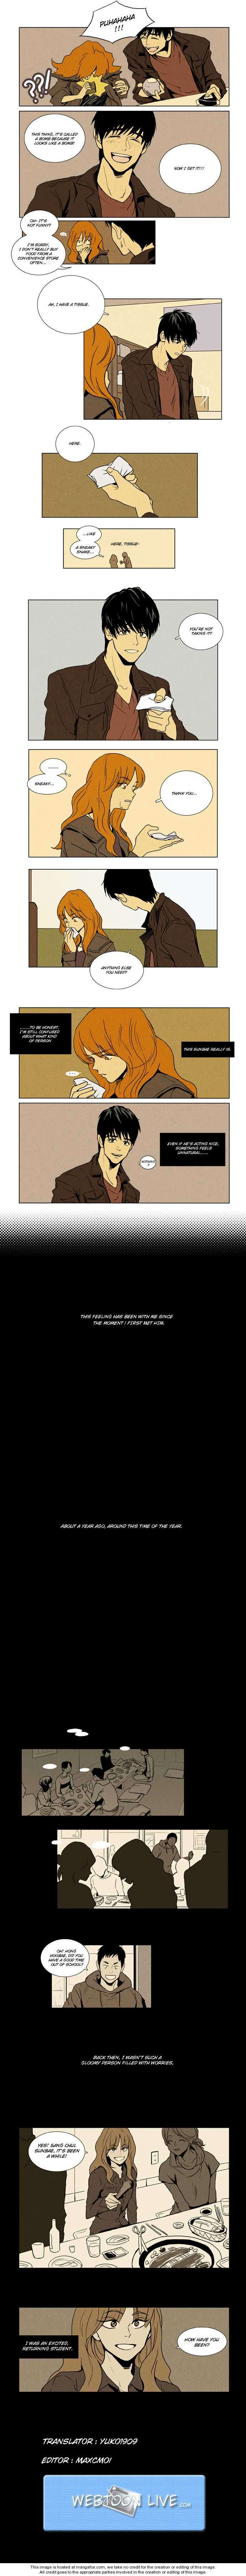 Cheese In The Trap 2 Page 2